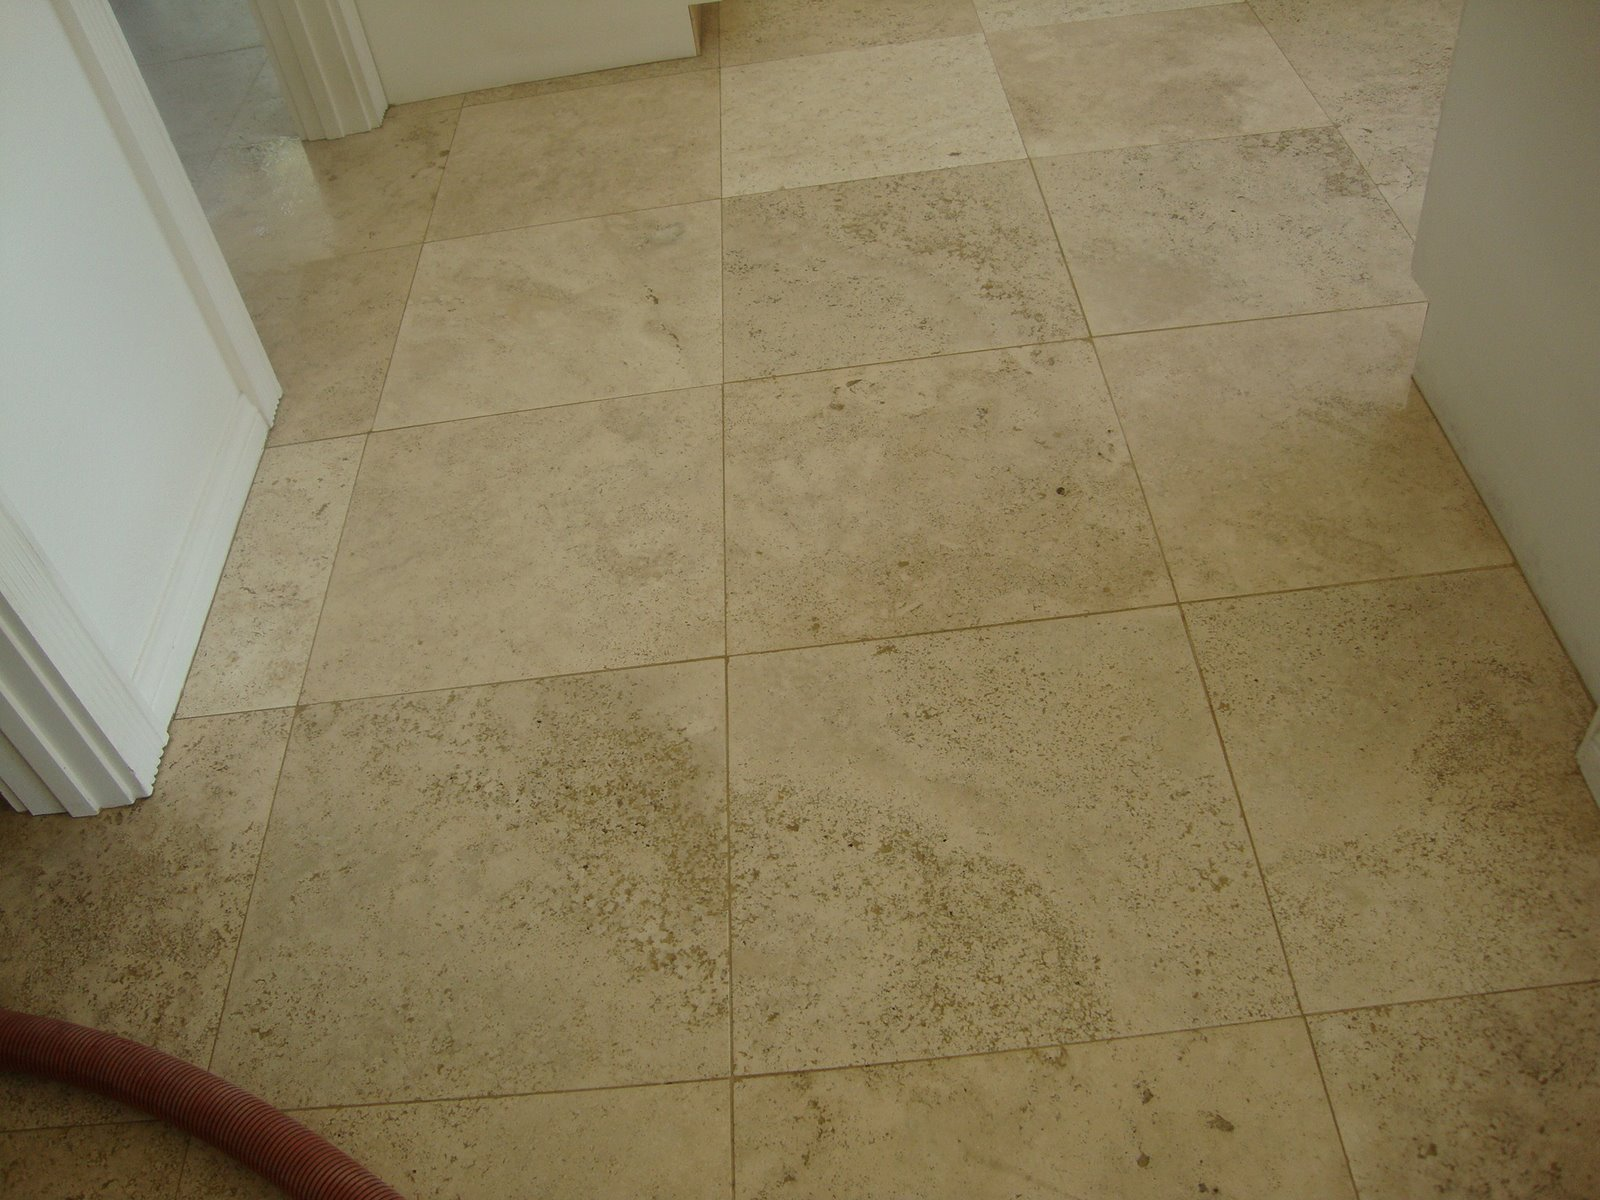 Tile And Grout Cleaning Professional Tile And Grout Cleaning Pitted